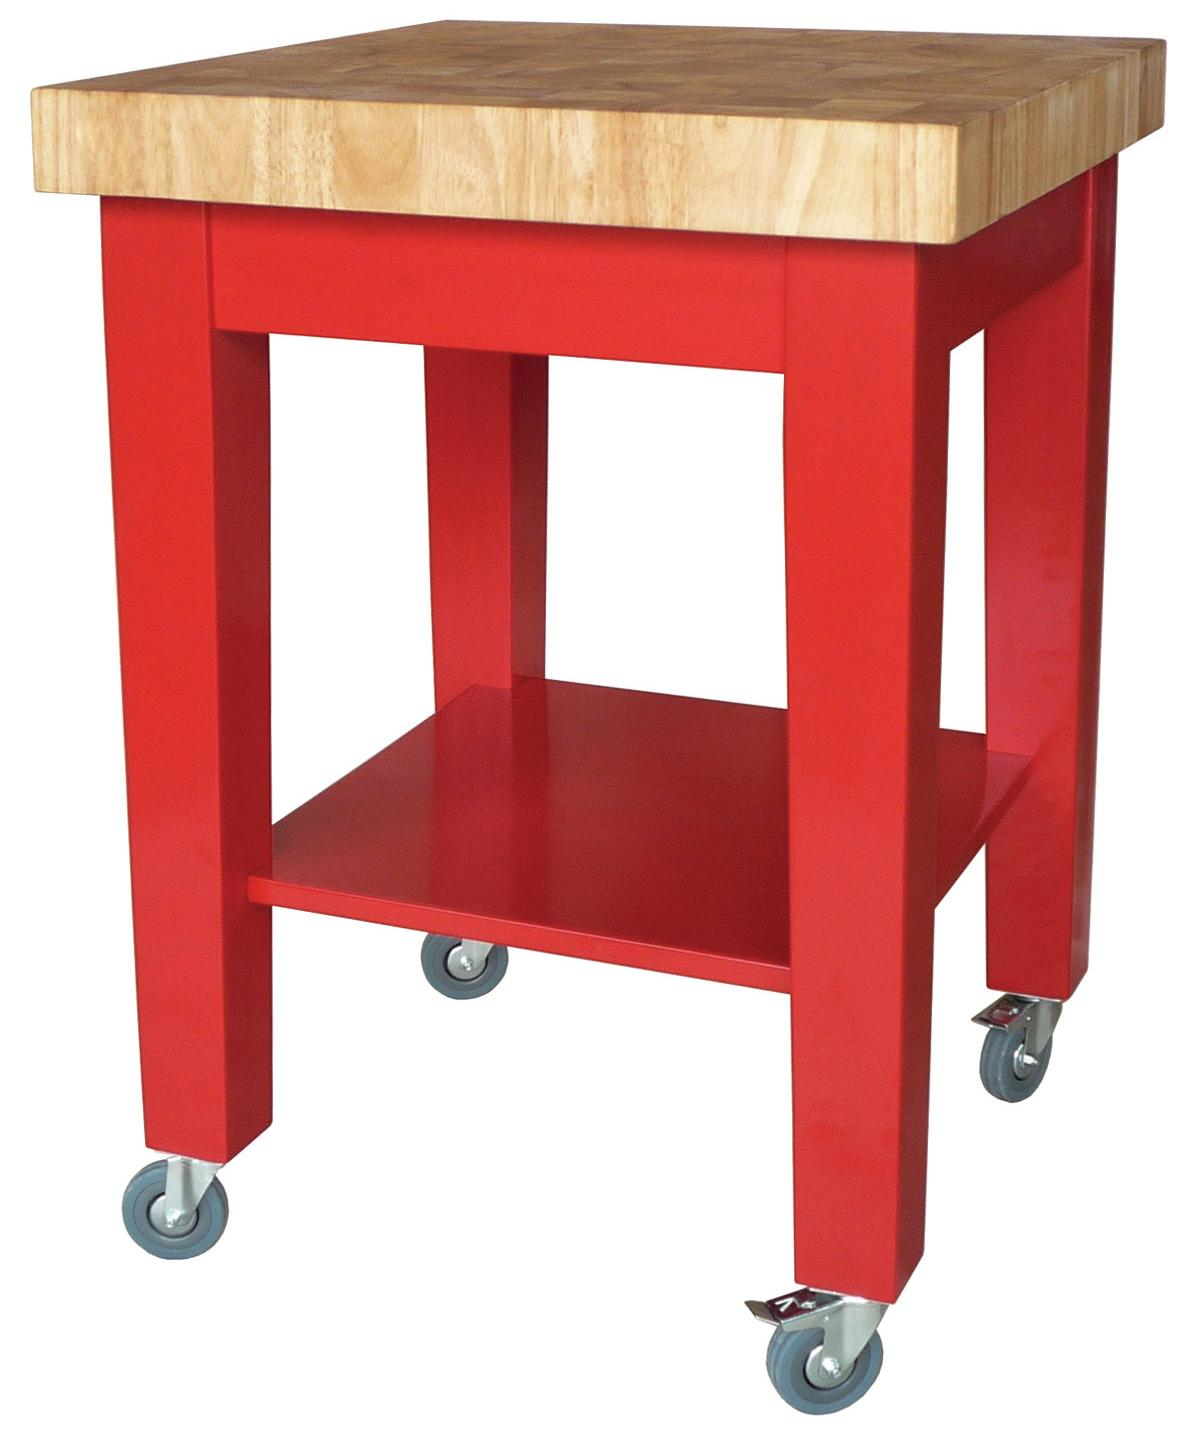 John Thomas Dining Essentials Kitchen Cutting Block Cart - Item Number: WC21-2424